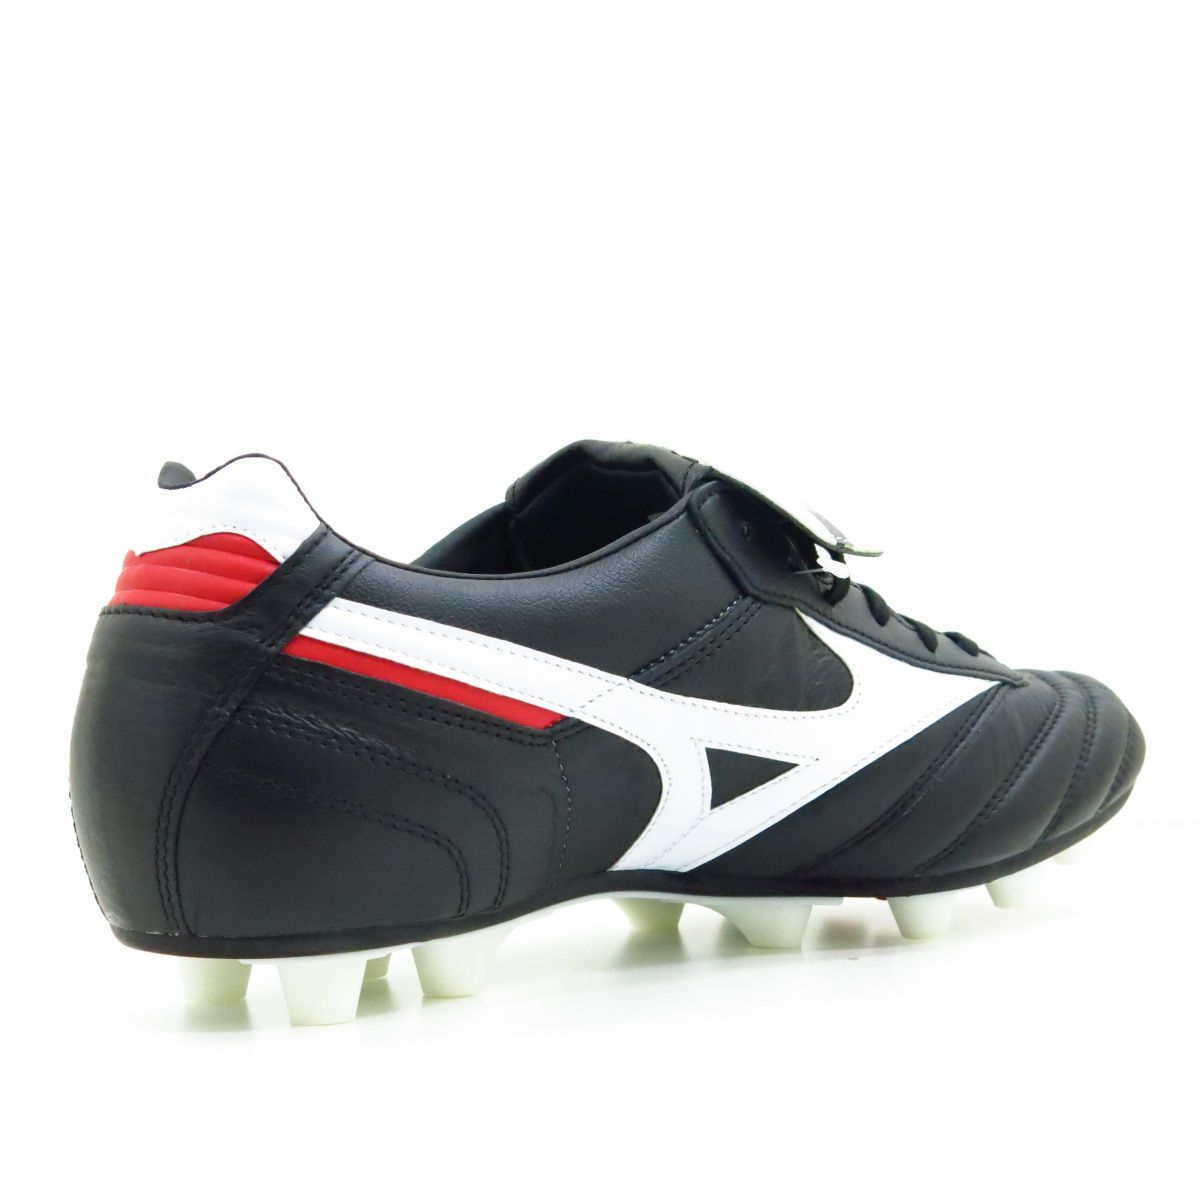 Chuteira Mizuno Morelia MD - Made in Japan - Couro de Canguru